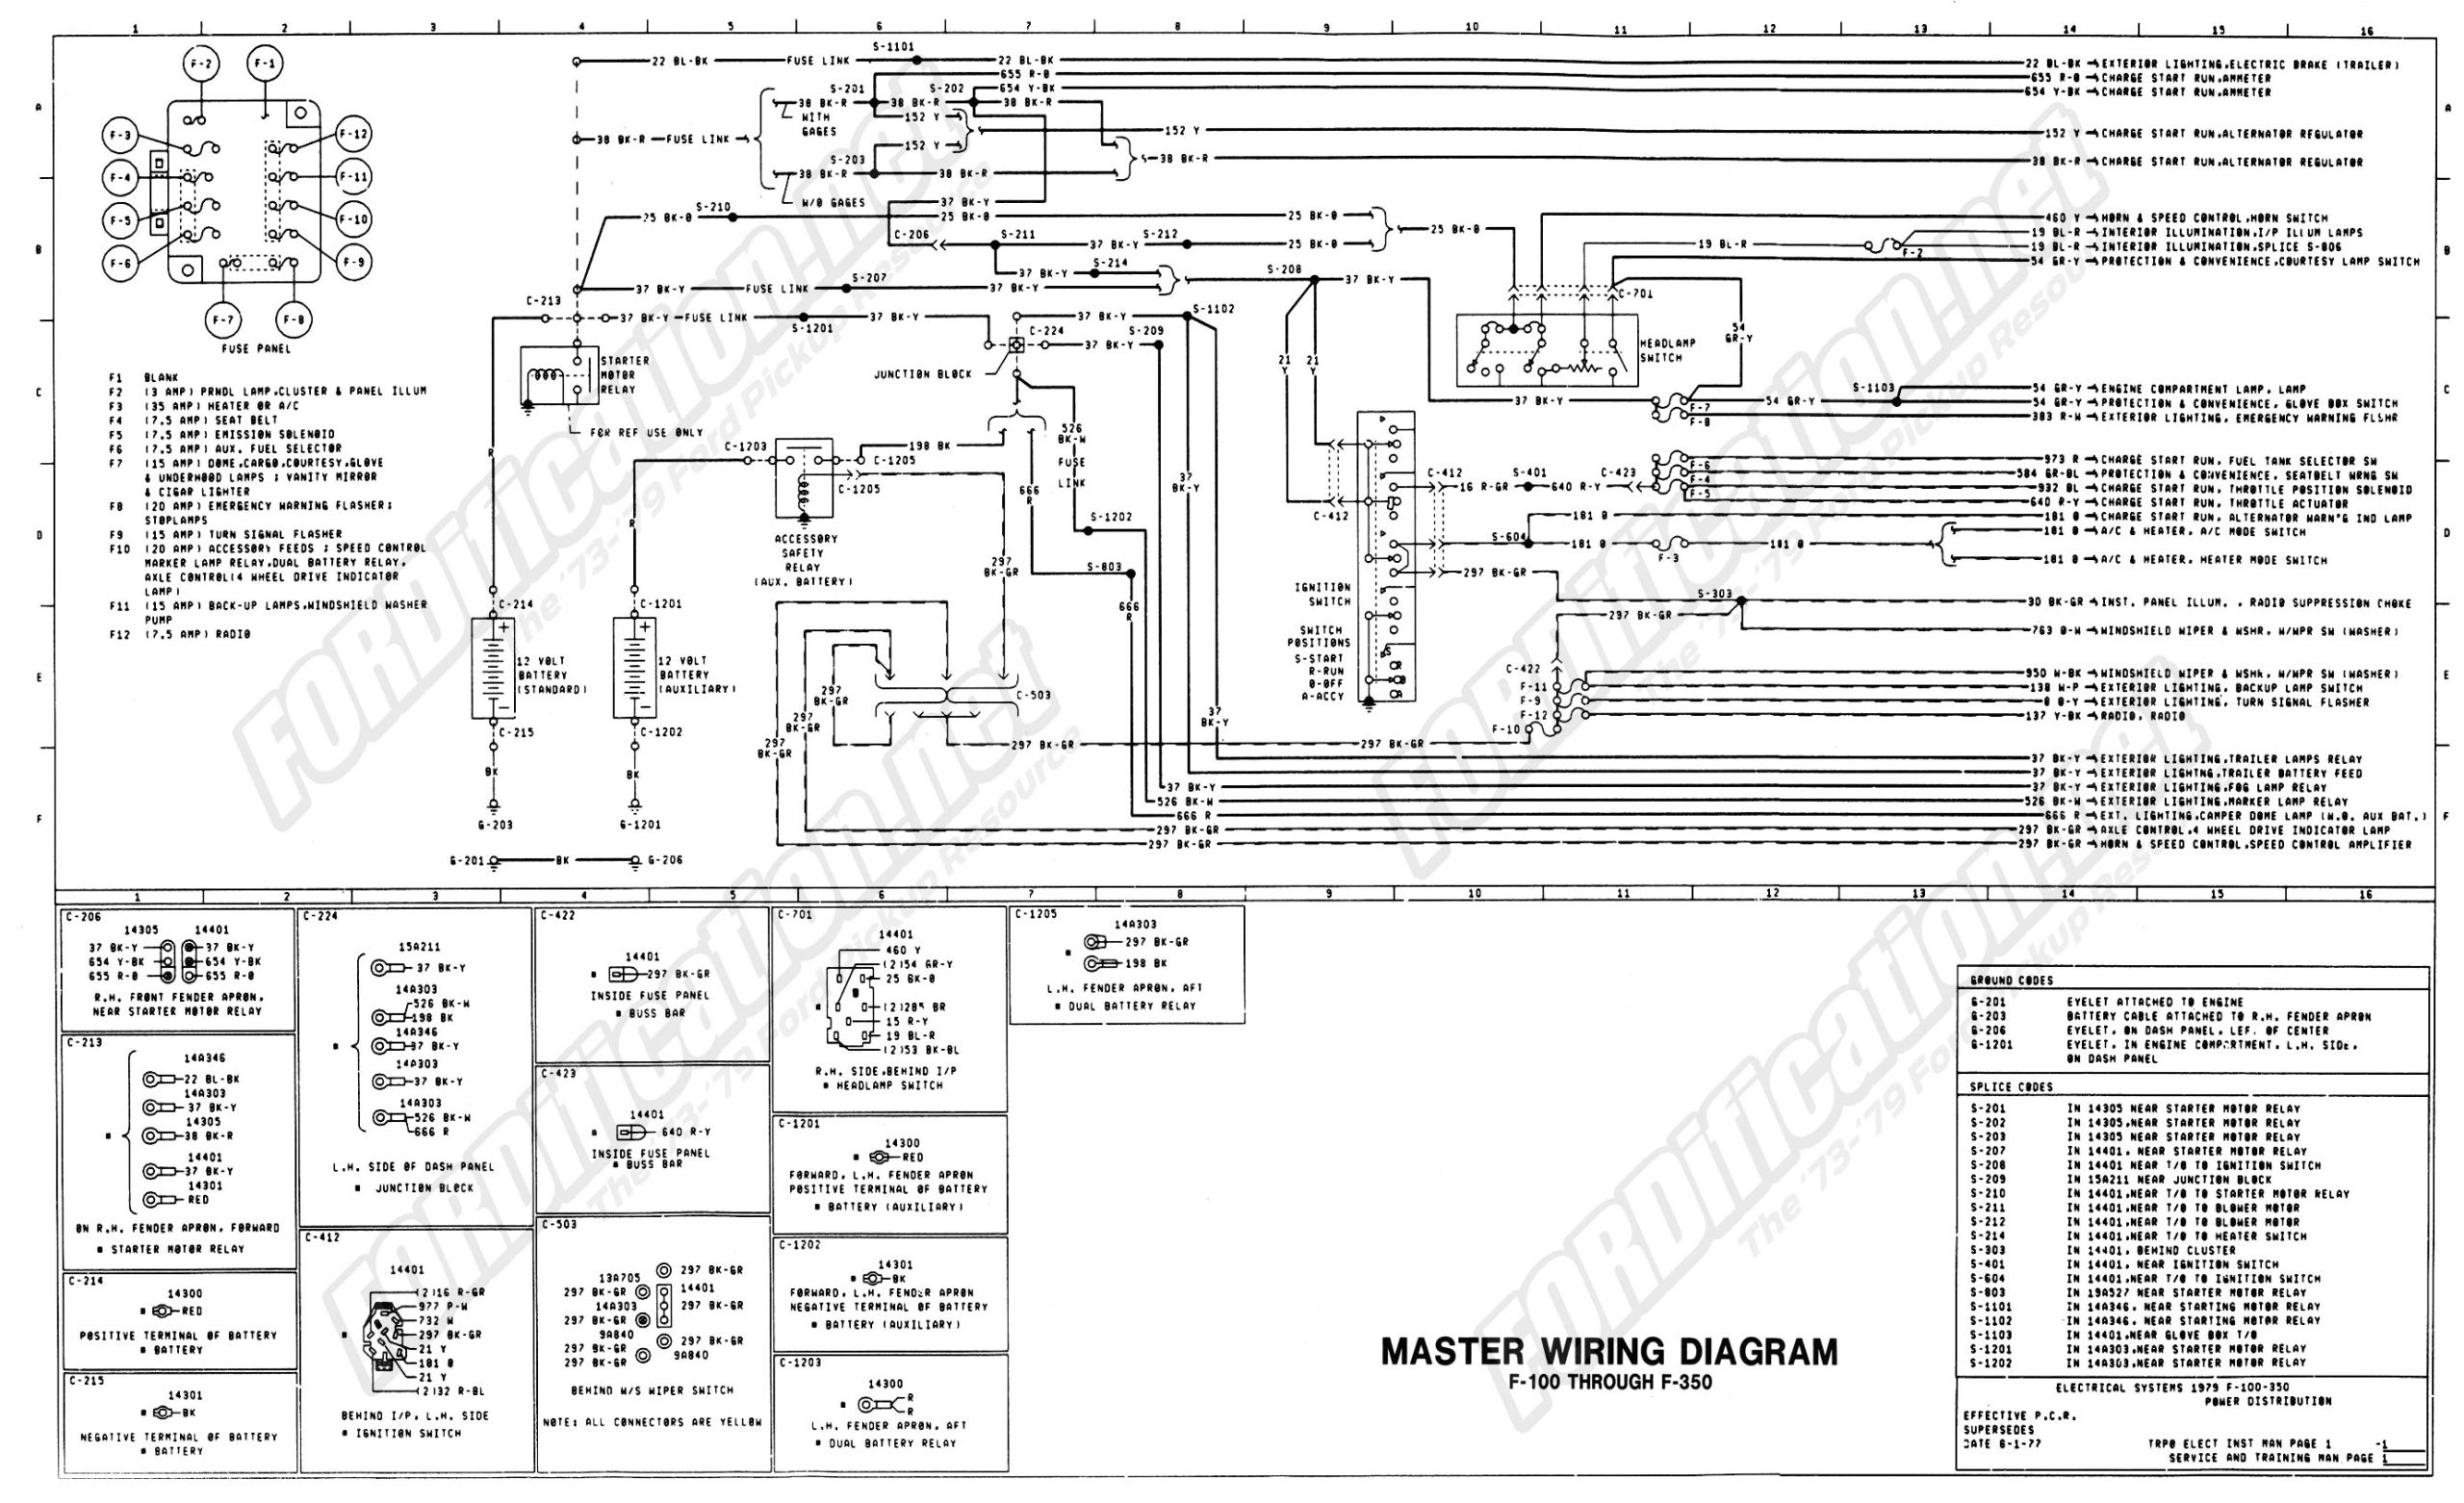 Ford Truck Wiring Harness Diagram 1973 1979 ford Truck Wiring Diagrams Schematics